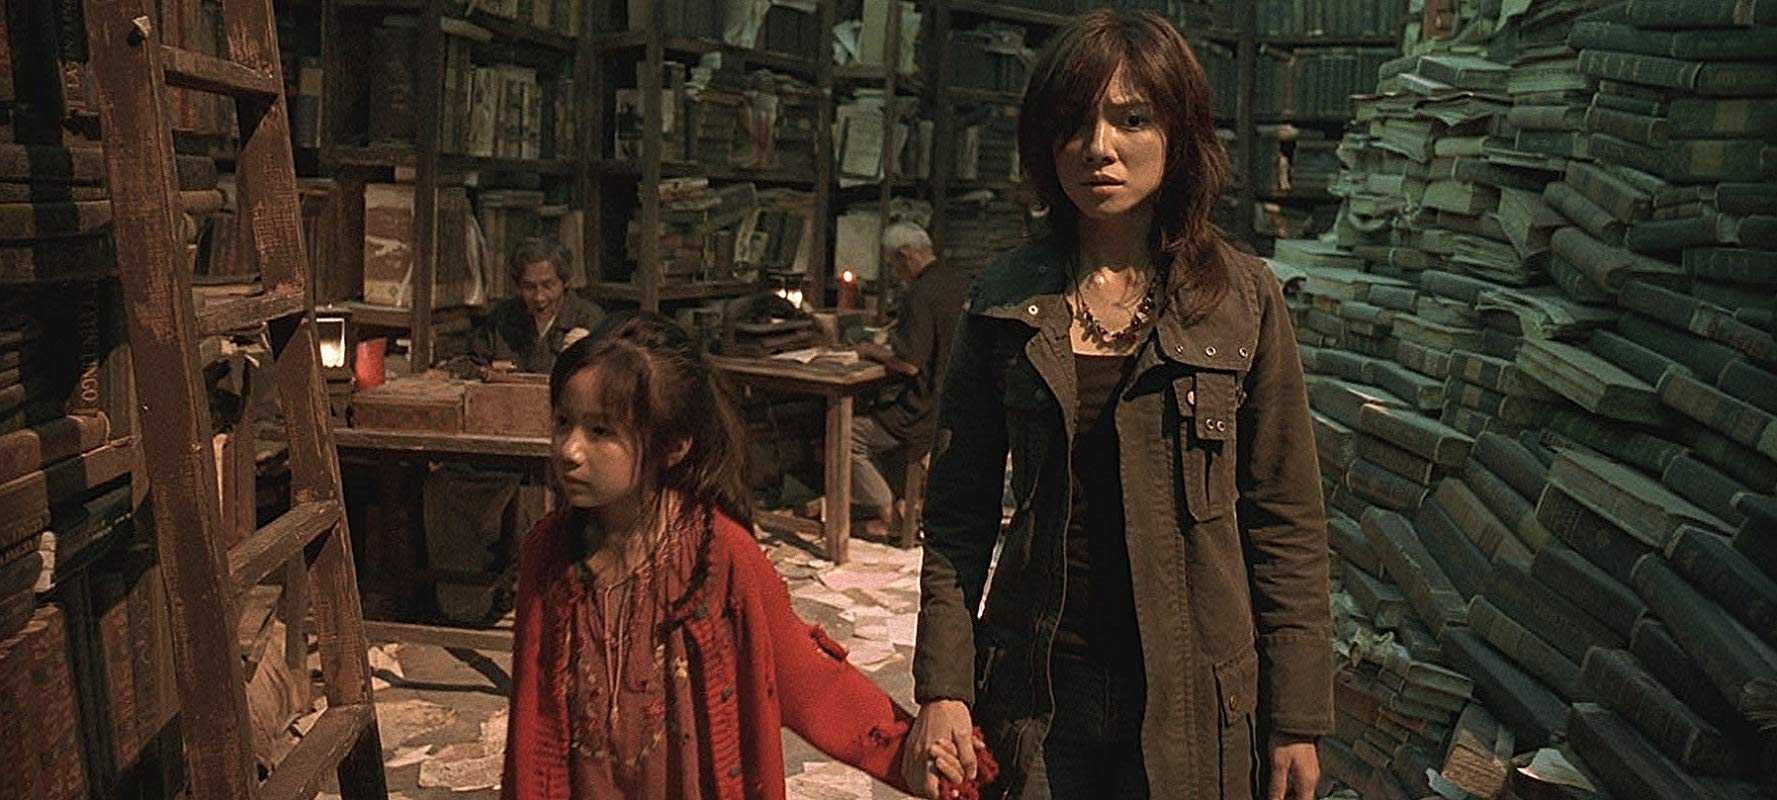 Lee Sinje and young Yaqi Zeng in Re-Cycle (2006)